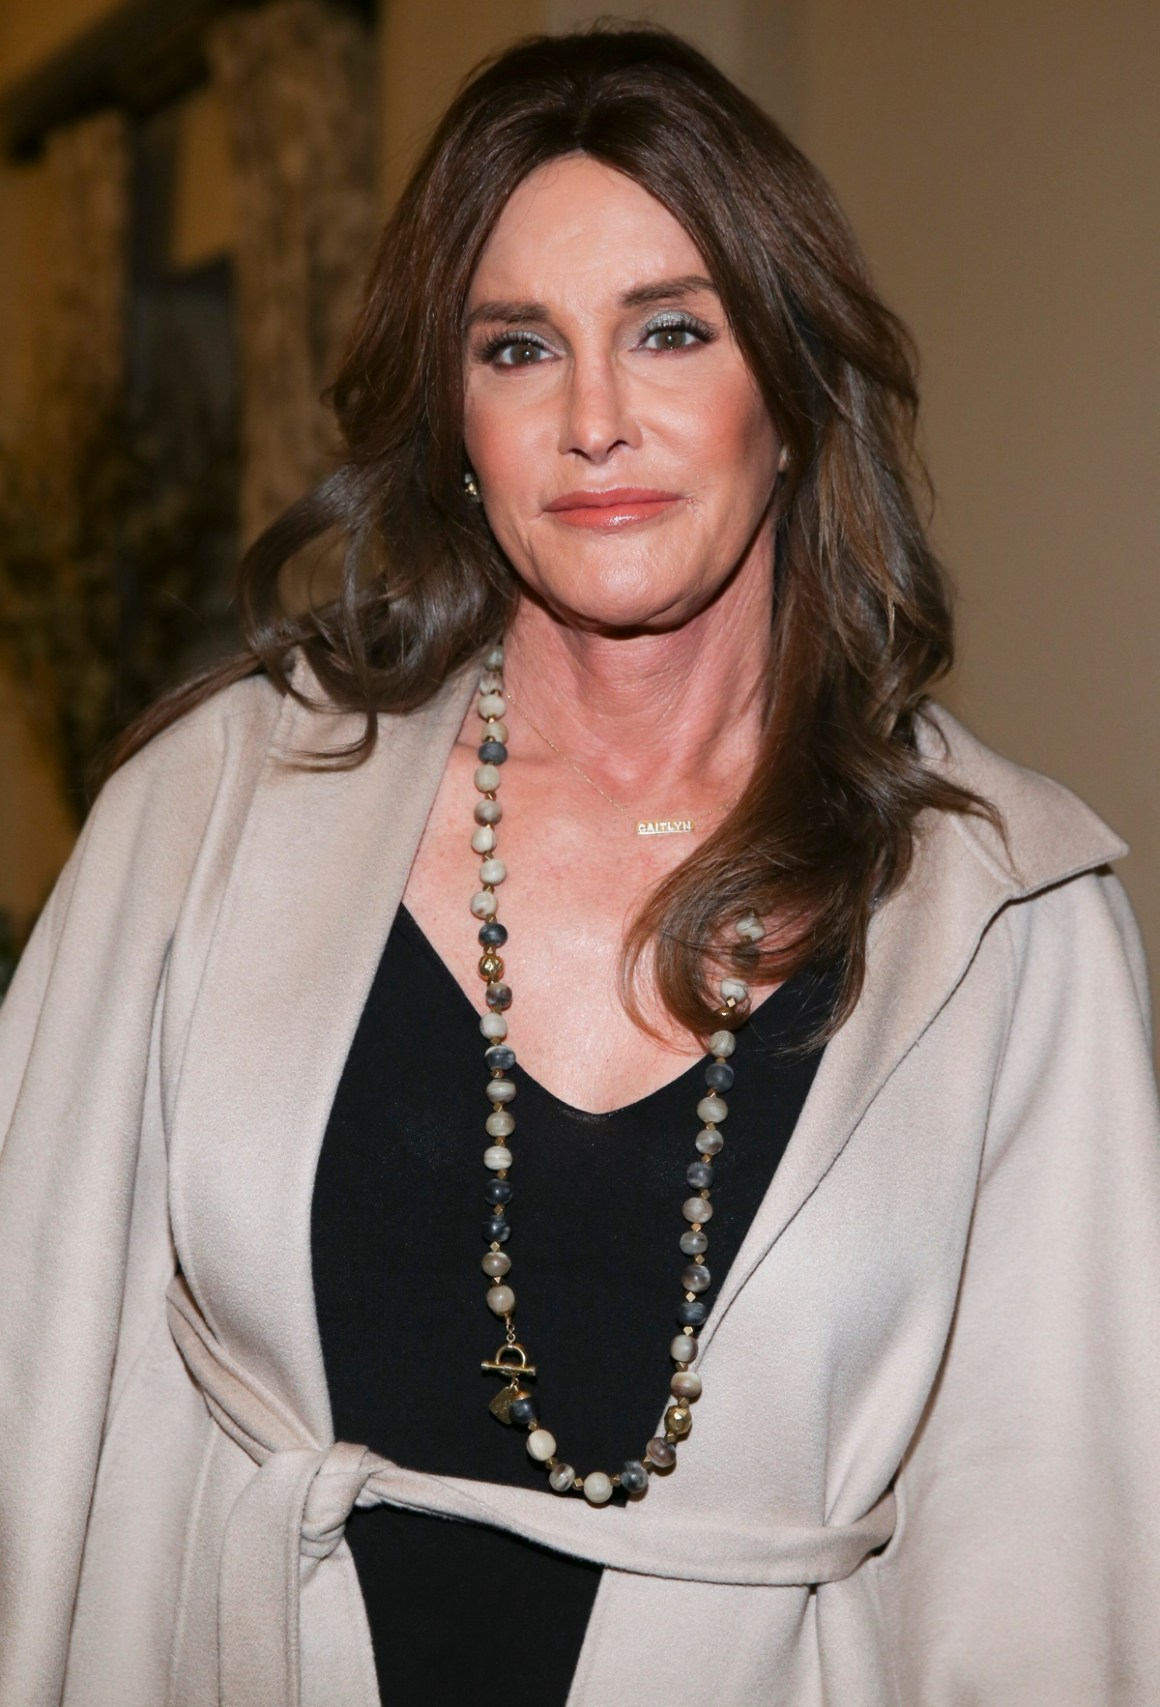 Caitlyn Jenner The MAKERS Conference 2016 - Day 1